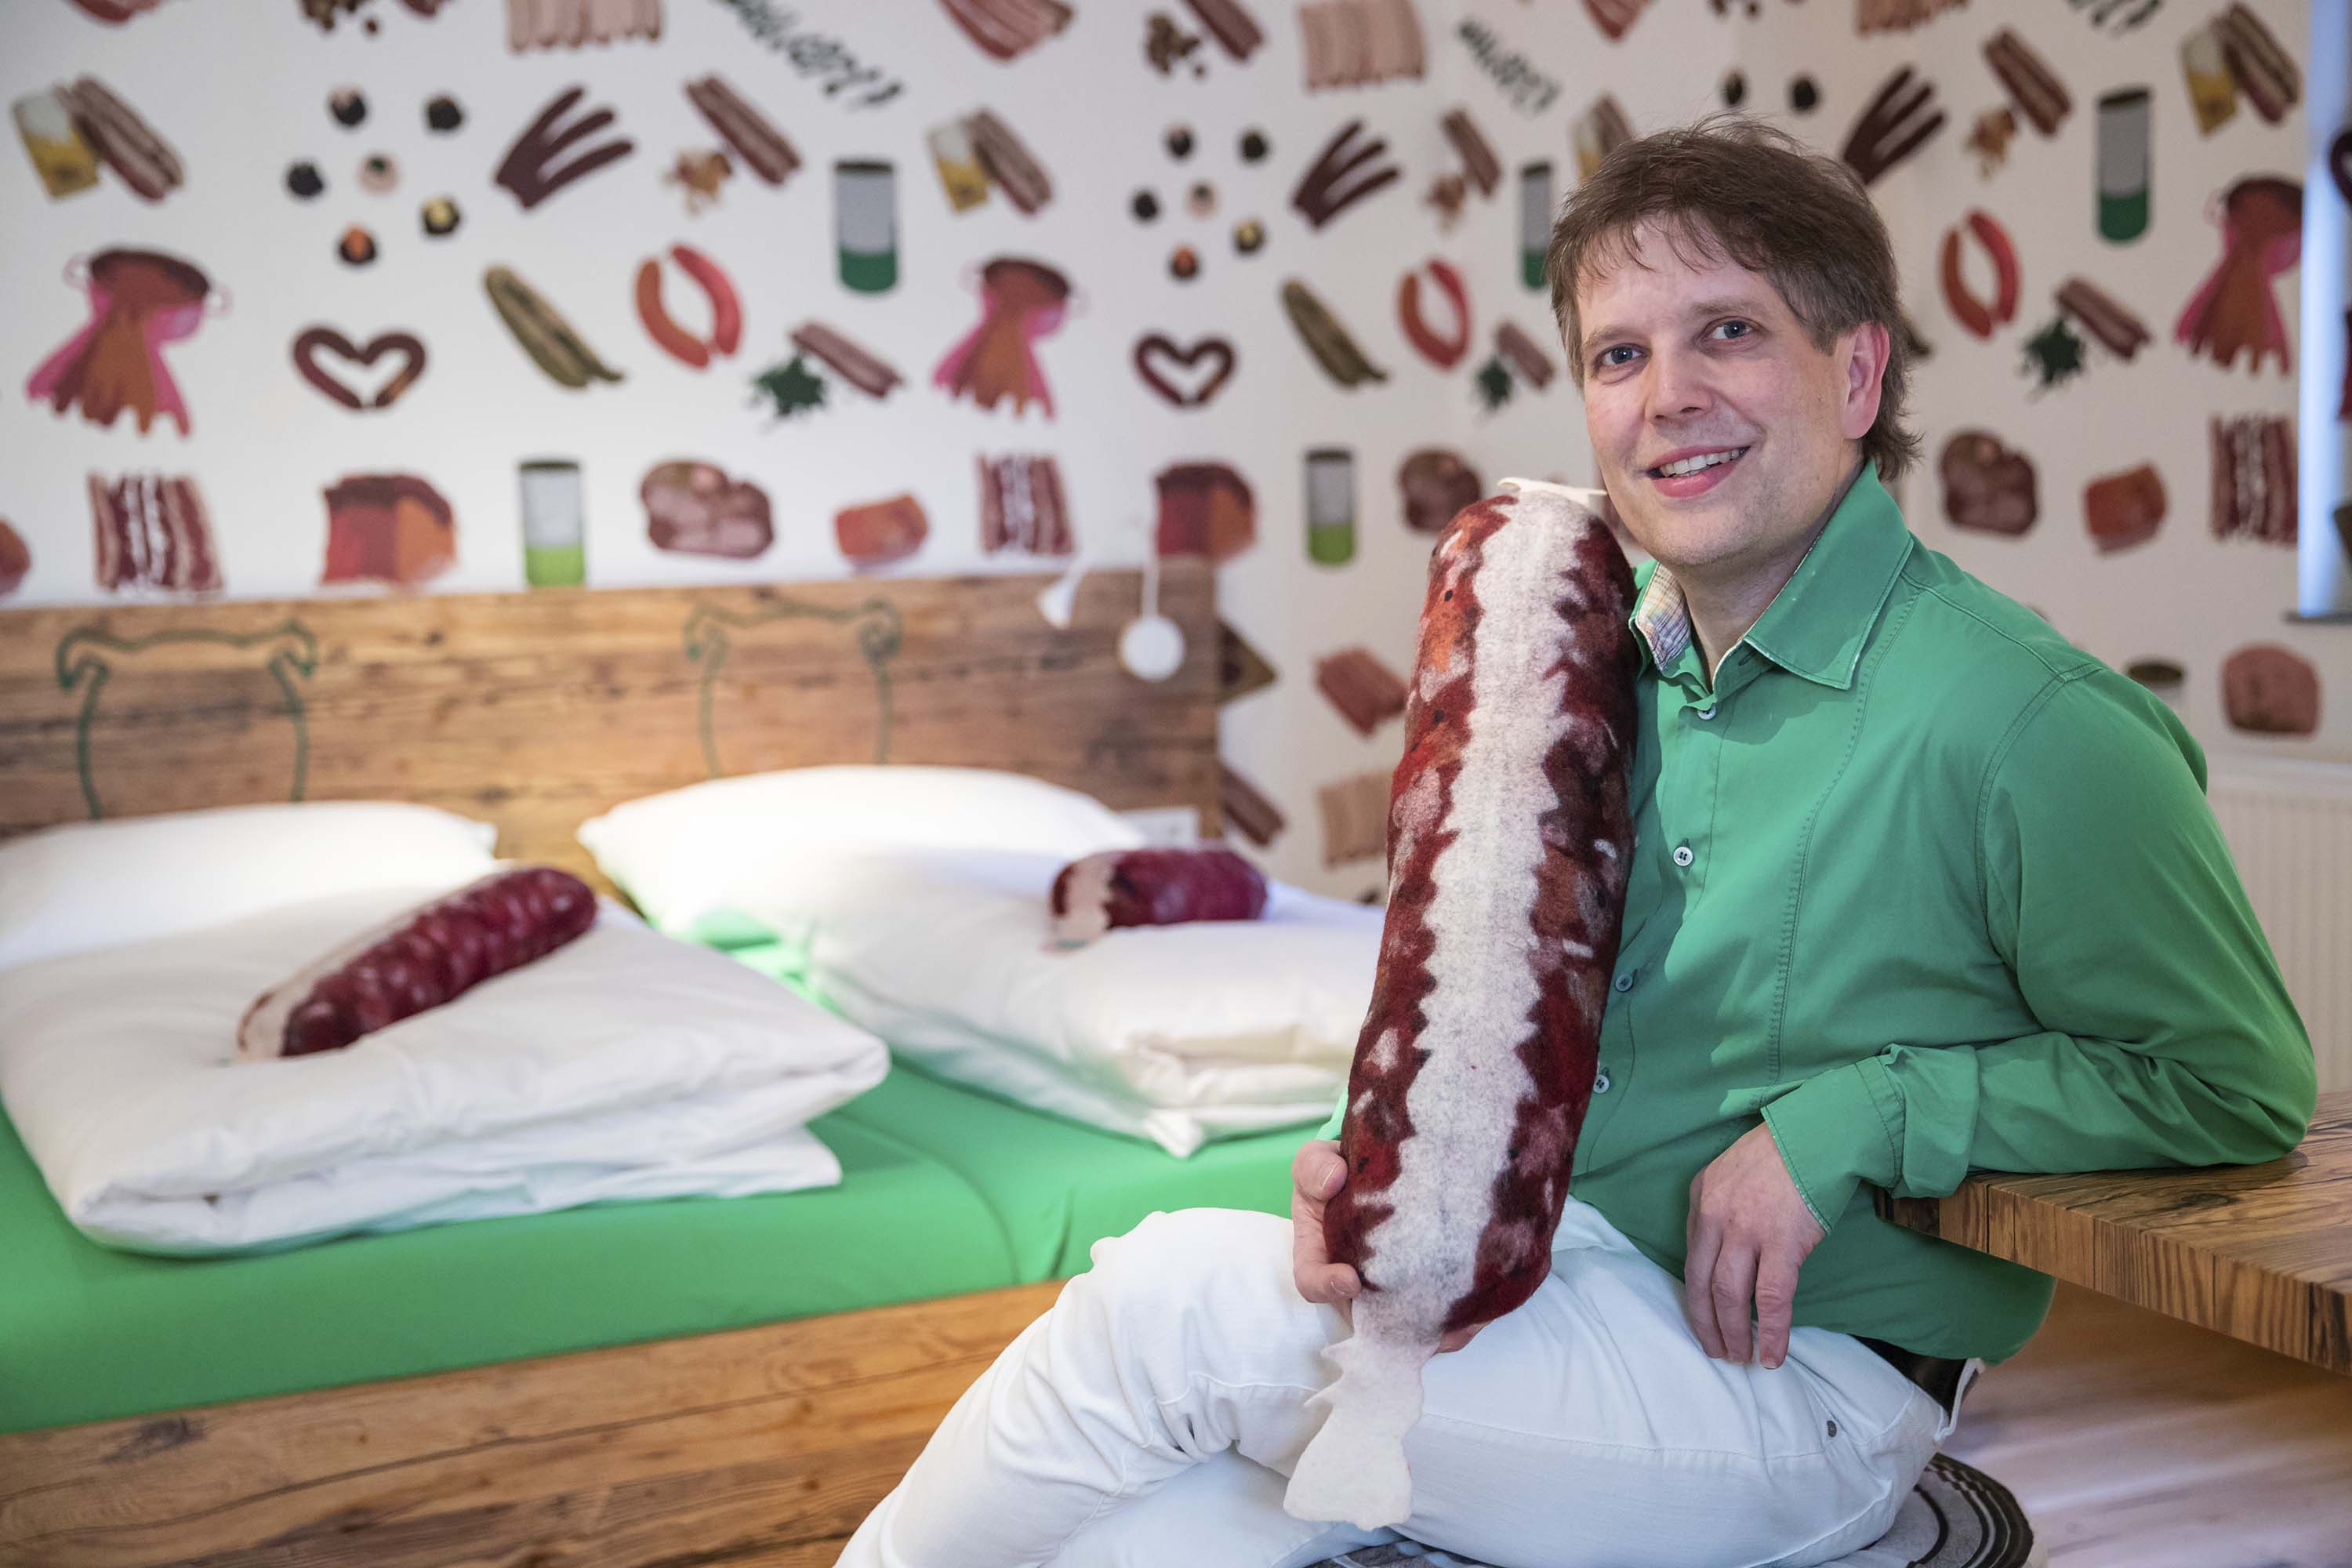 Germany's sausage hotel: Bratwurst on the menu and the